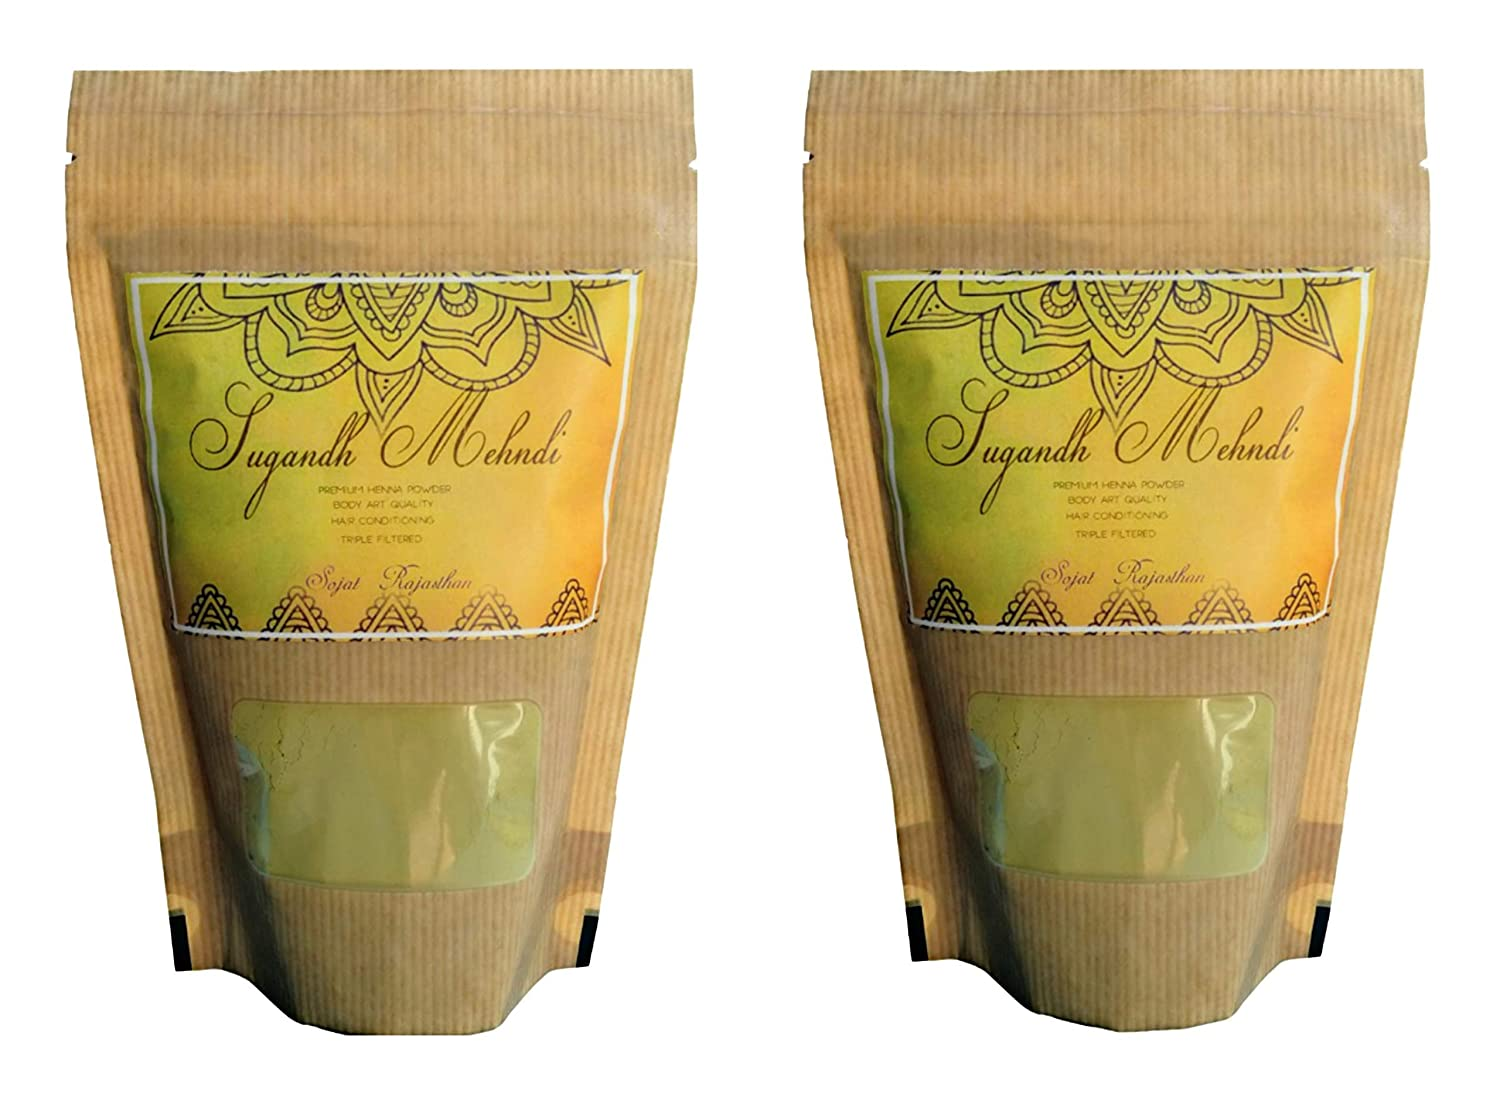 Buy Sugandh Mehndi Double Sifted Filtered Rajasthani Henna Powder For Body Art Hair Conditioning With Herbal Mixture 100g X2 Pack Of 2 Online At Low Prices In India Amazon In